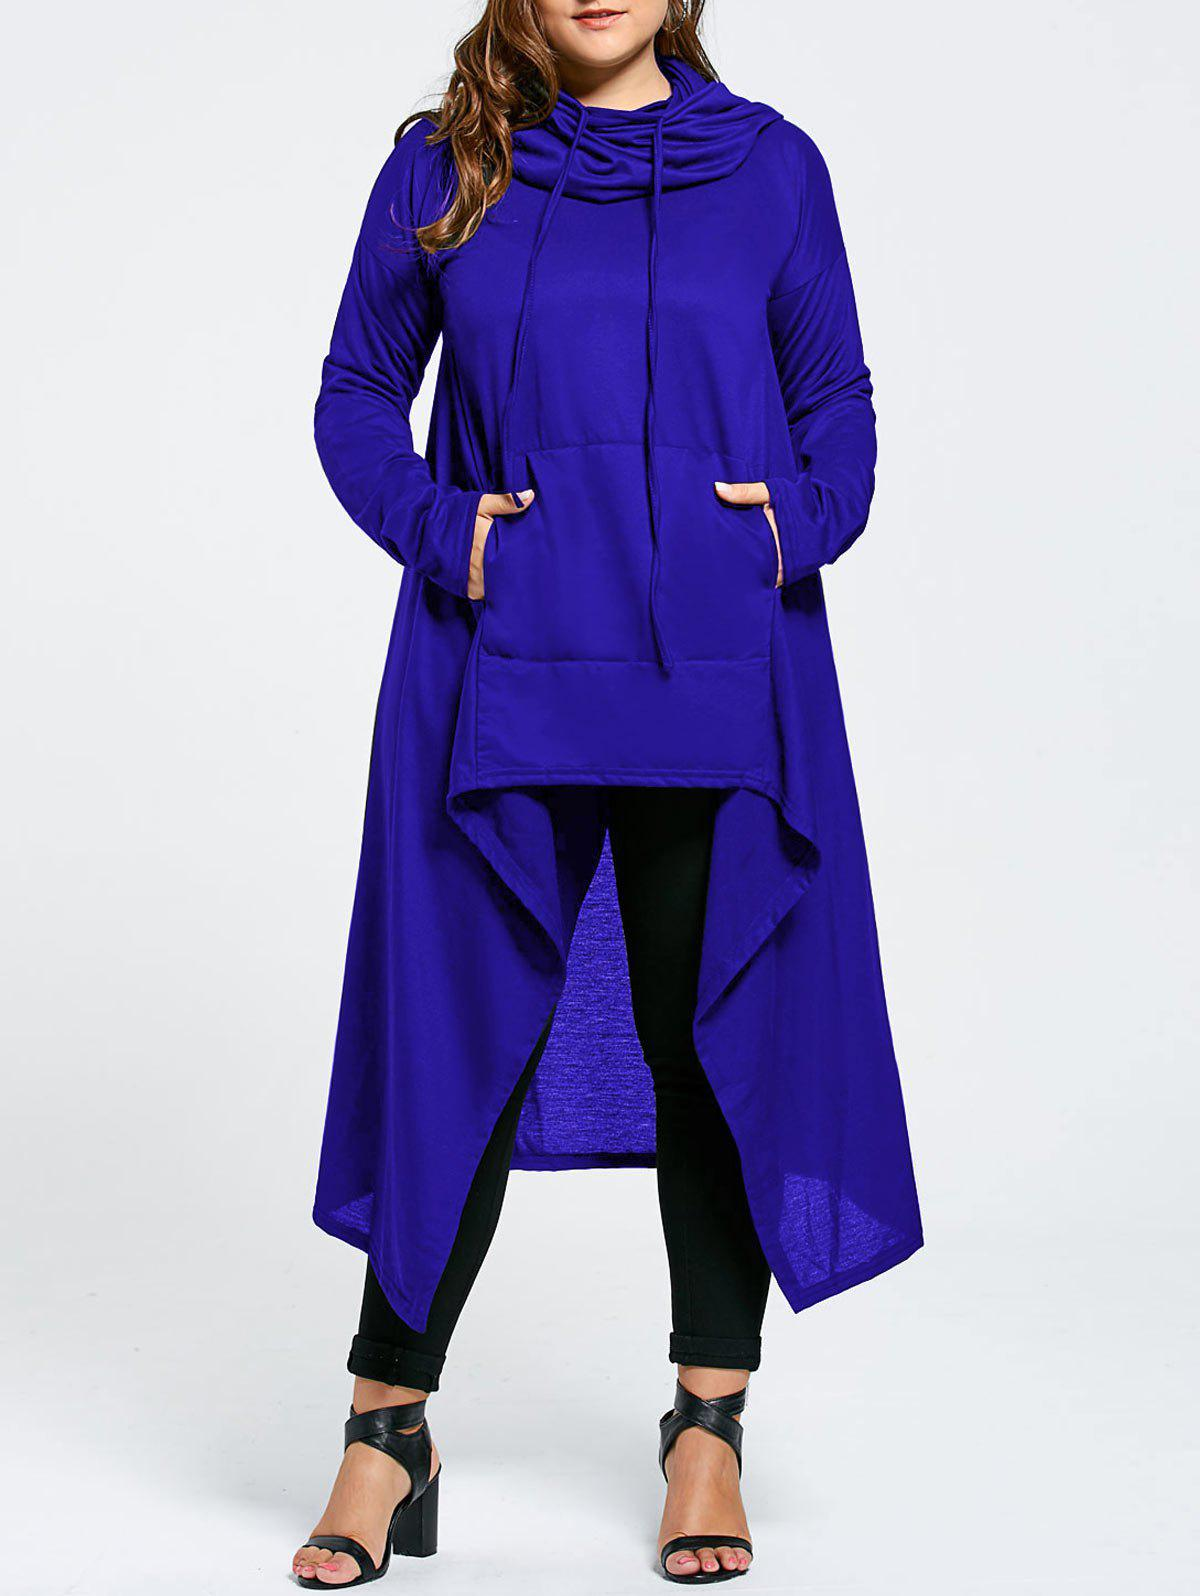 Plus Size Maxi Asymmetric Funnel Collar HoodieWOMEN<br><br>Size: 5XL; Color: BLUE; Material: Cotton Blend,Polyester; Shirt Length: X-Long; Sleeve Length: Full; Style: Fashion; Pattern Style: Solid; Season: Fall,Winter; Weight: 0.5800kg; Package Contents: 1 x Hoodie;